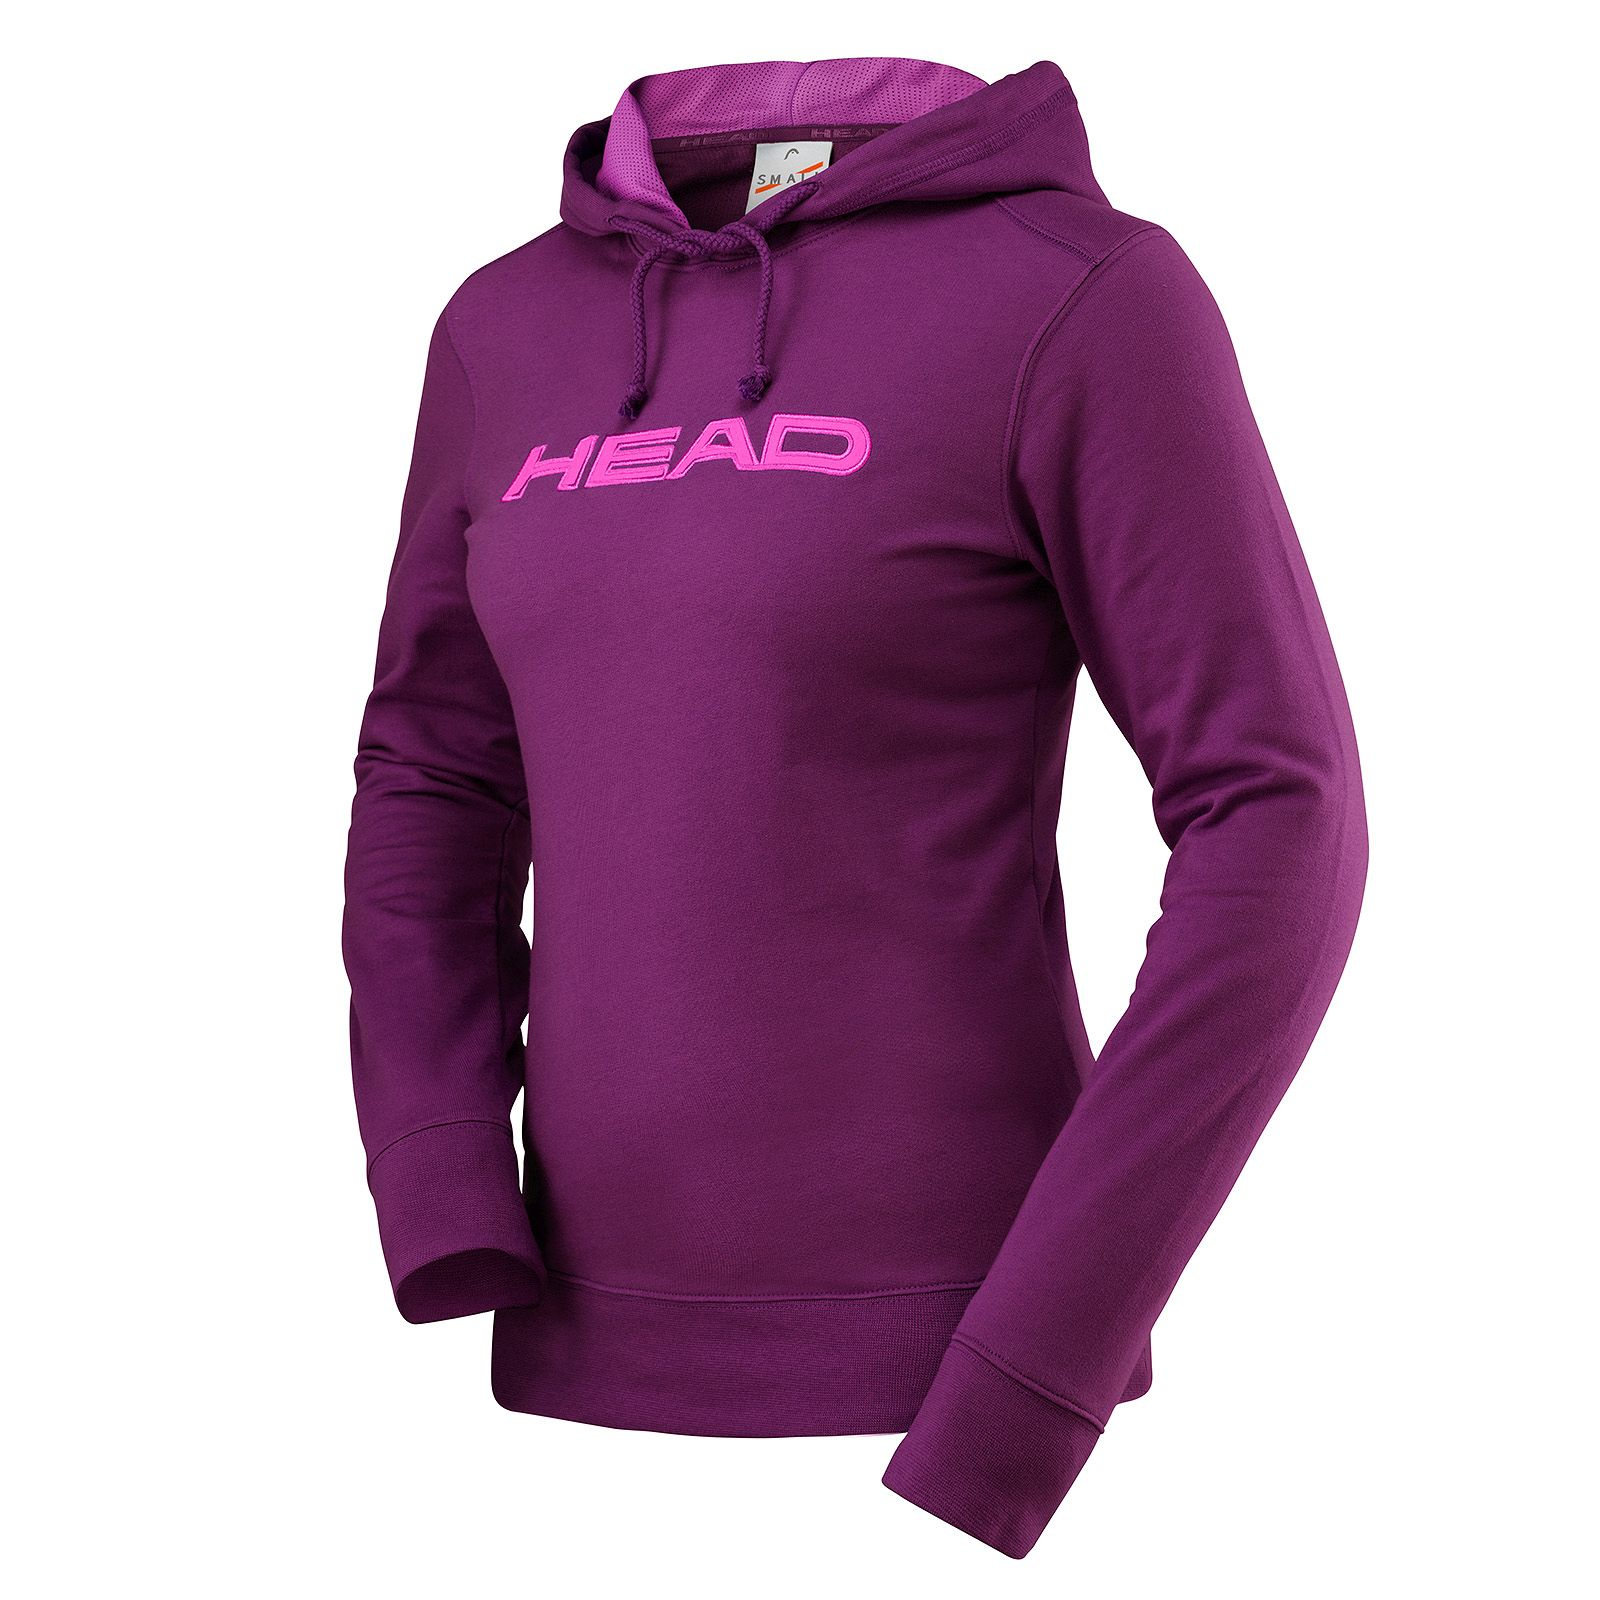 HEAD Transition Rosie Hoody Women Purple L